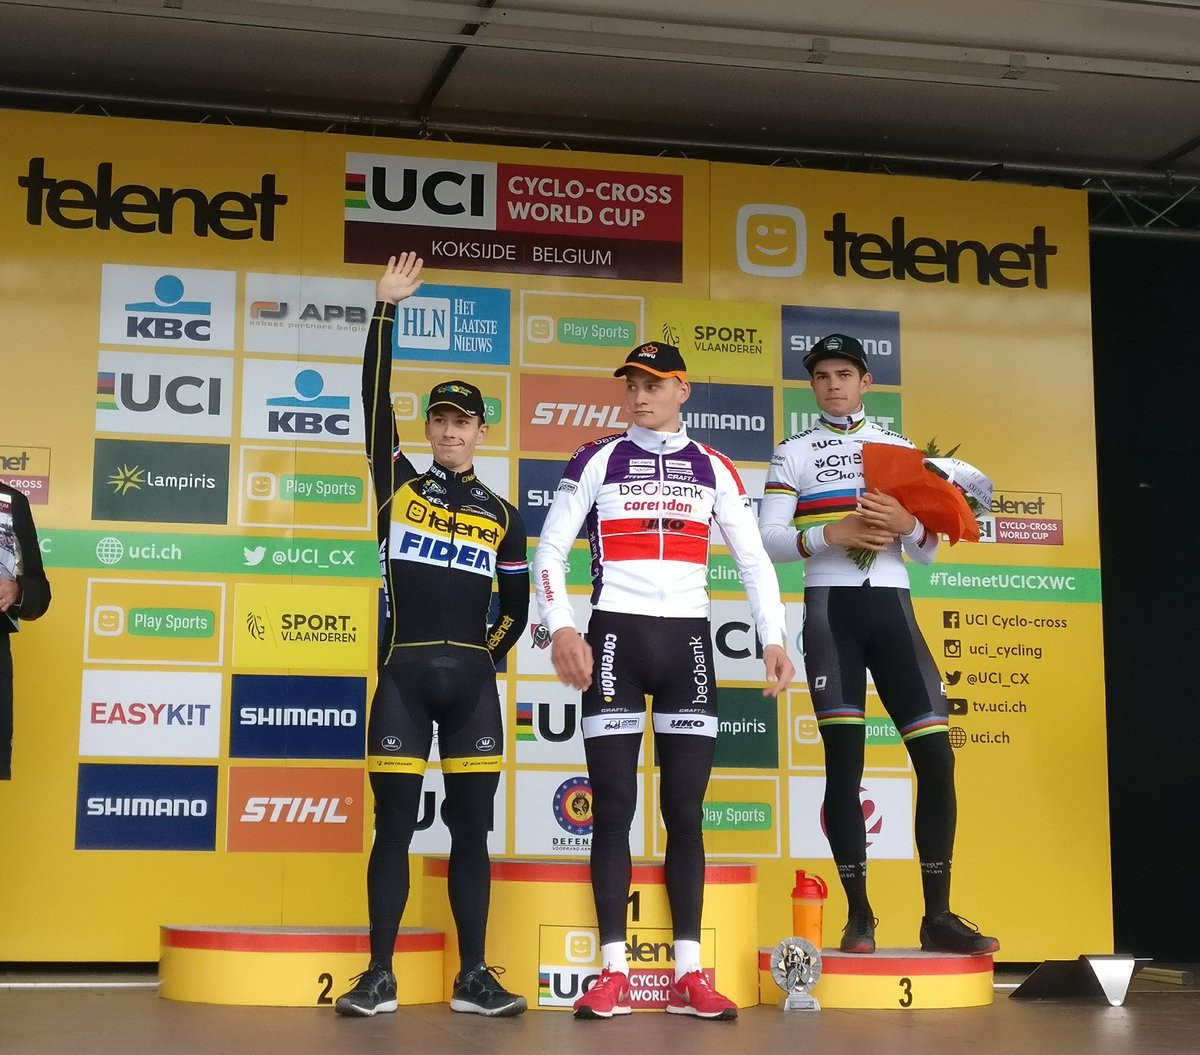 Van der Poel and Kaptheijns claim Dutch double at UCI Cyclo-Cross World Cup